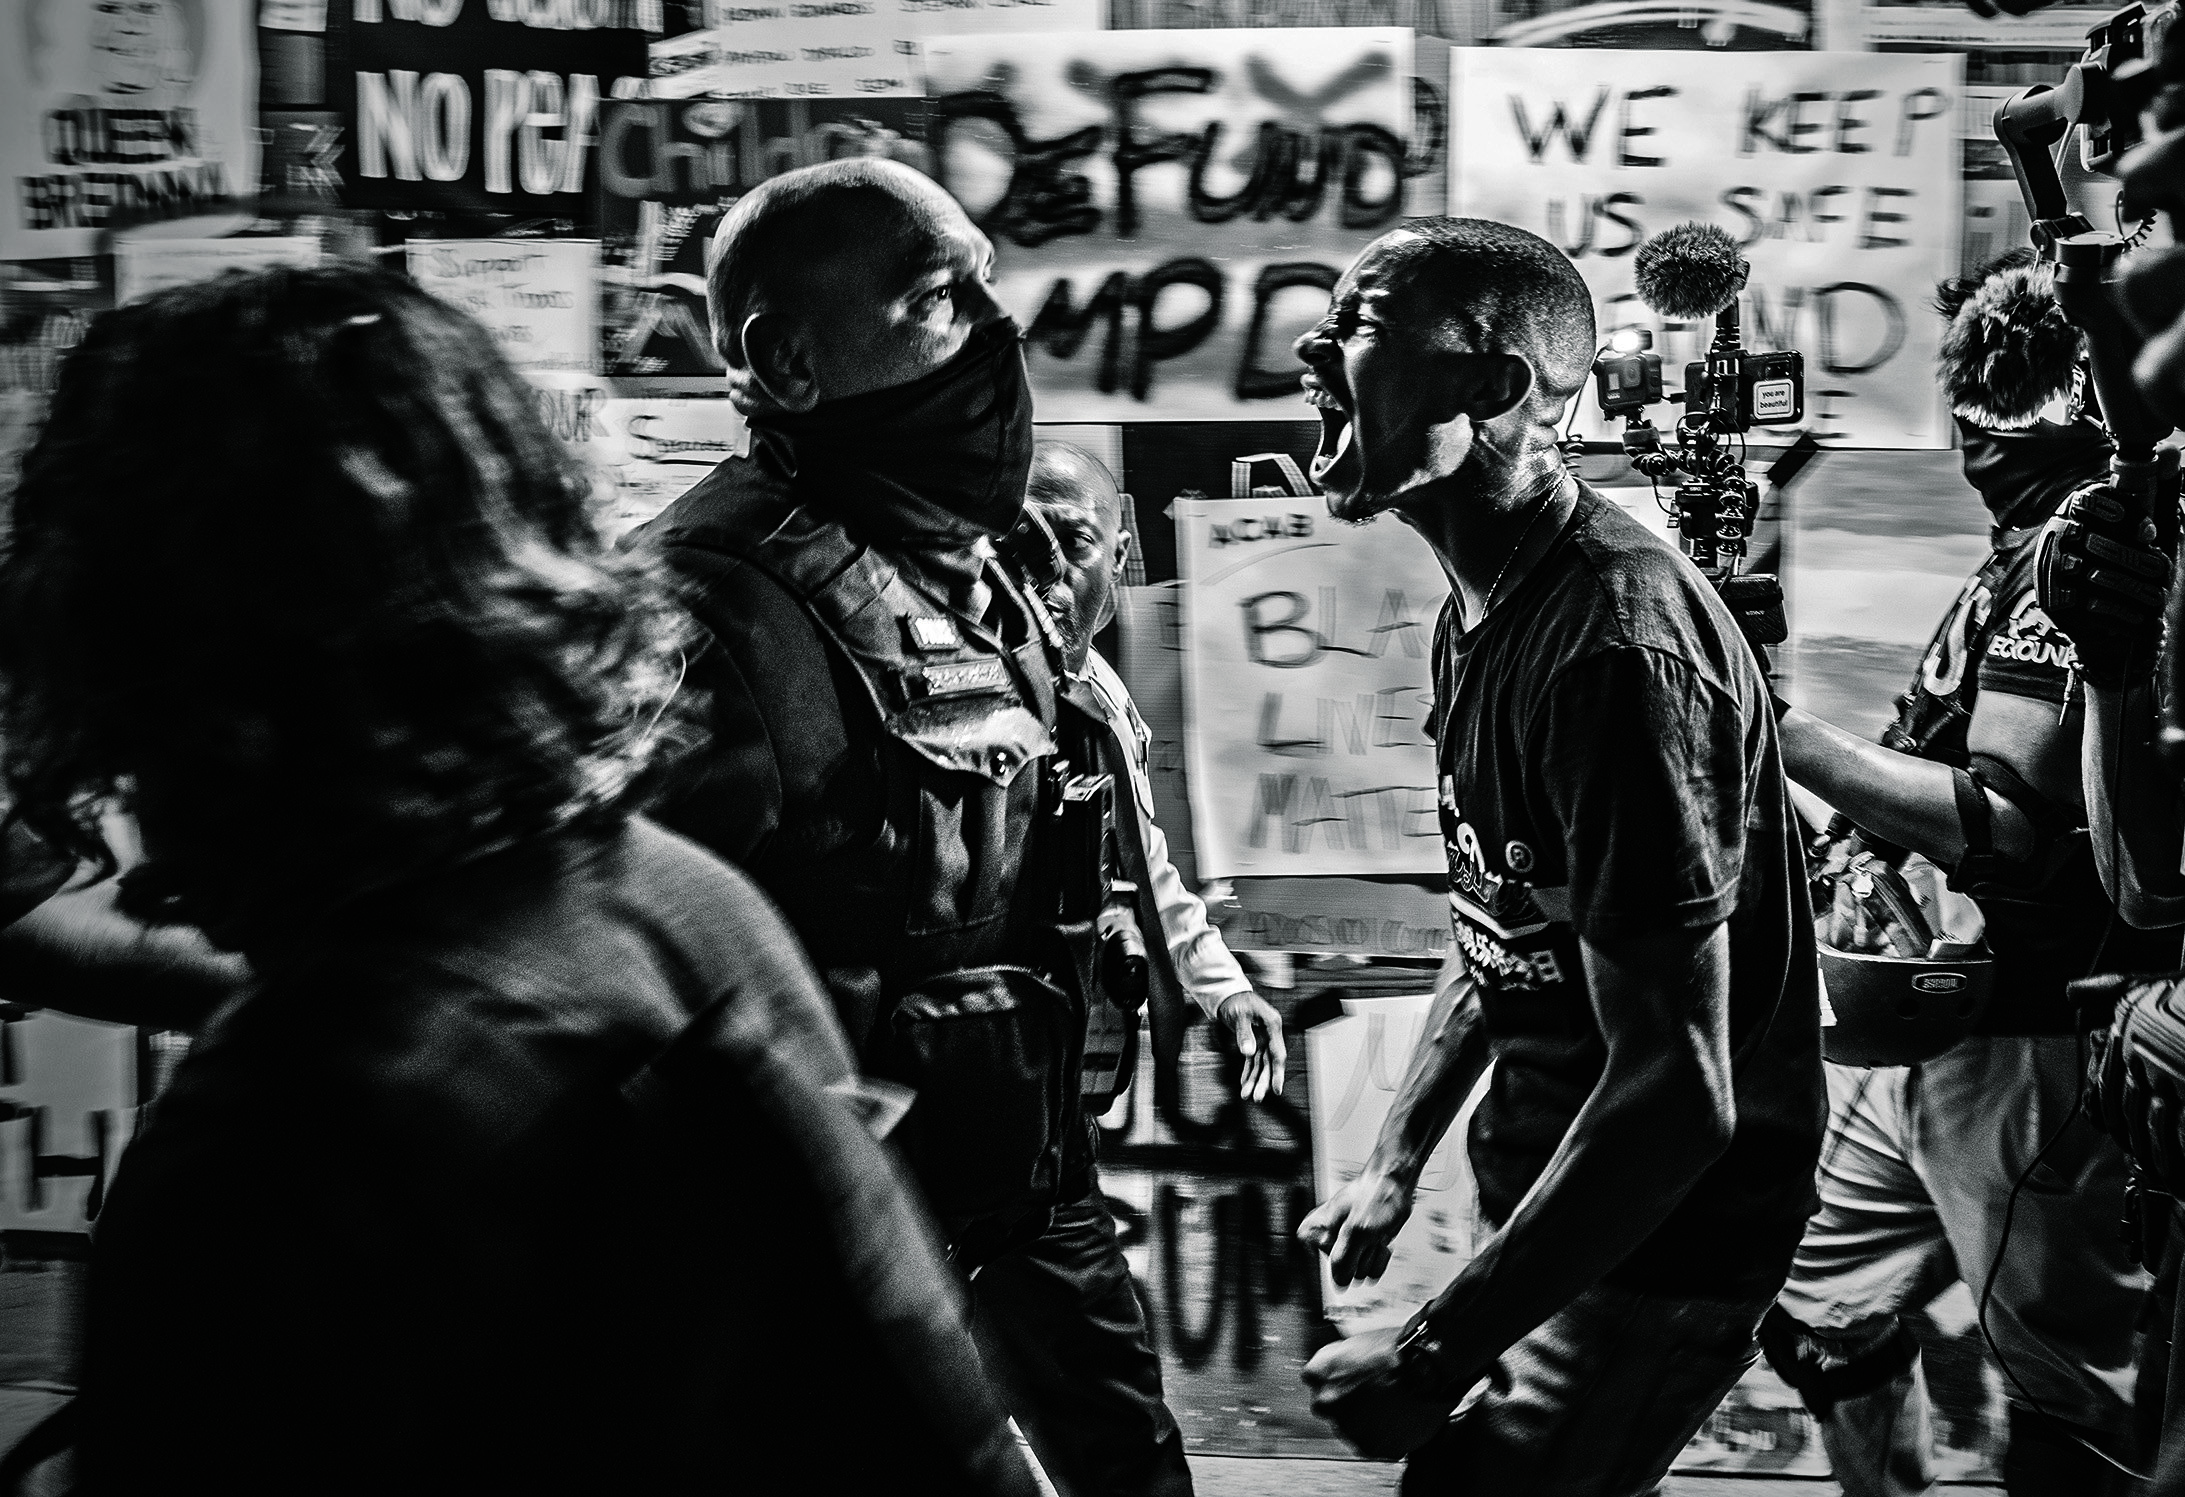 A man yells at a police officer during a protest